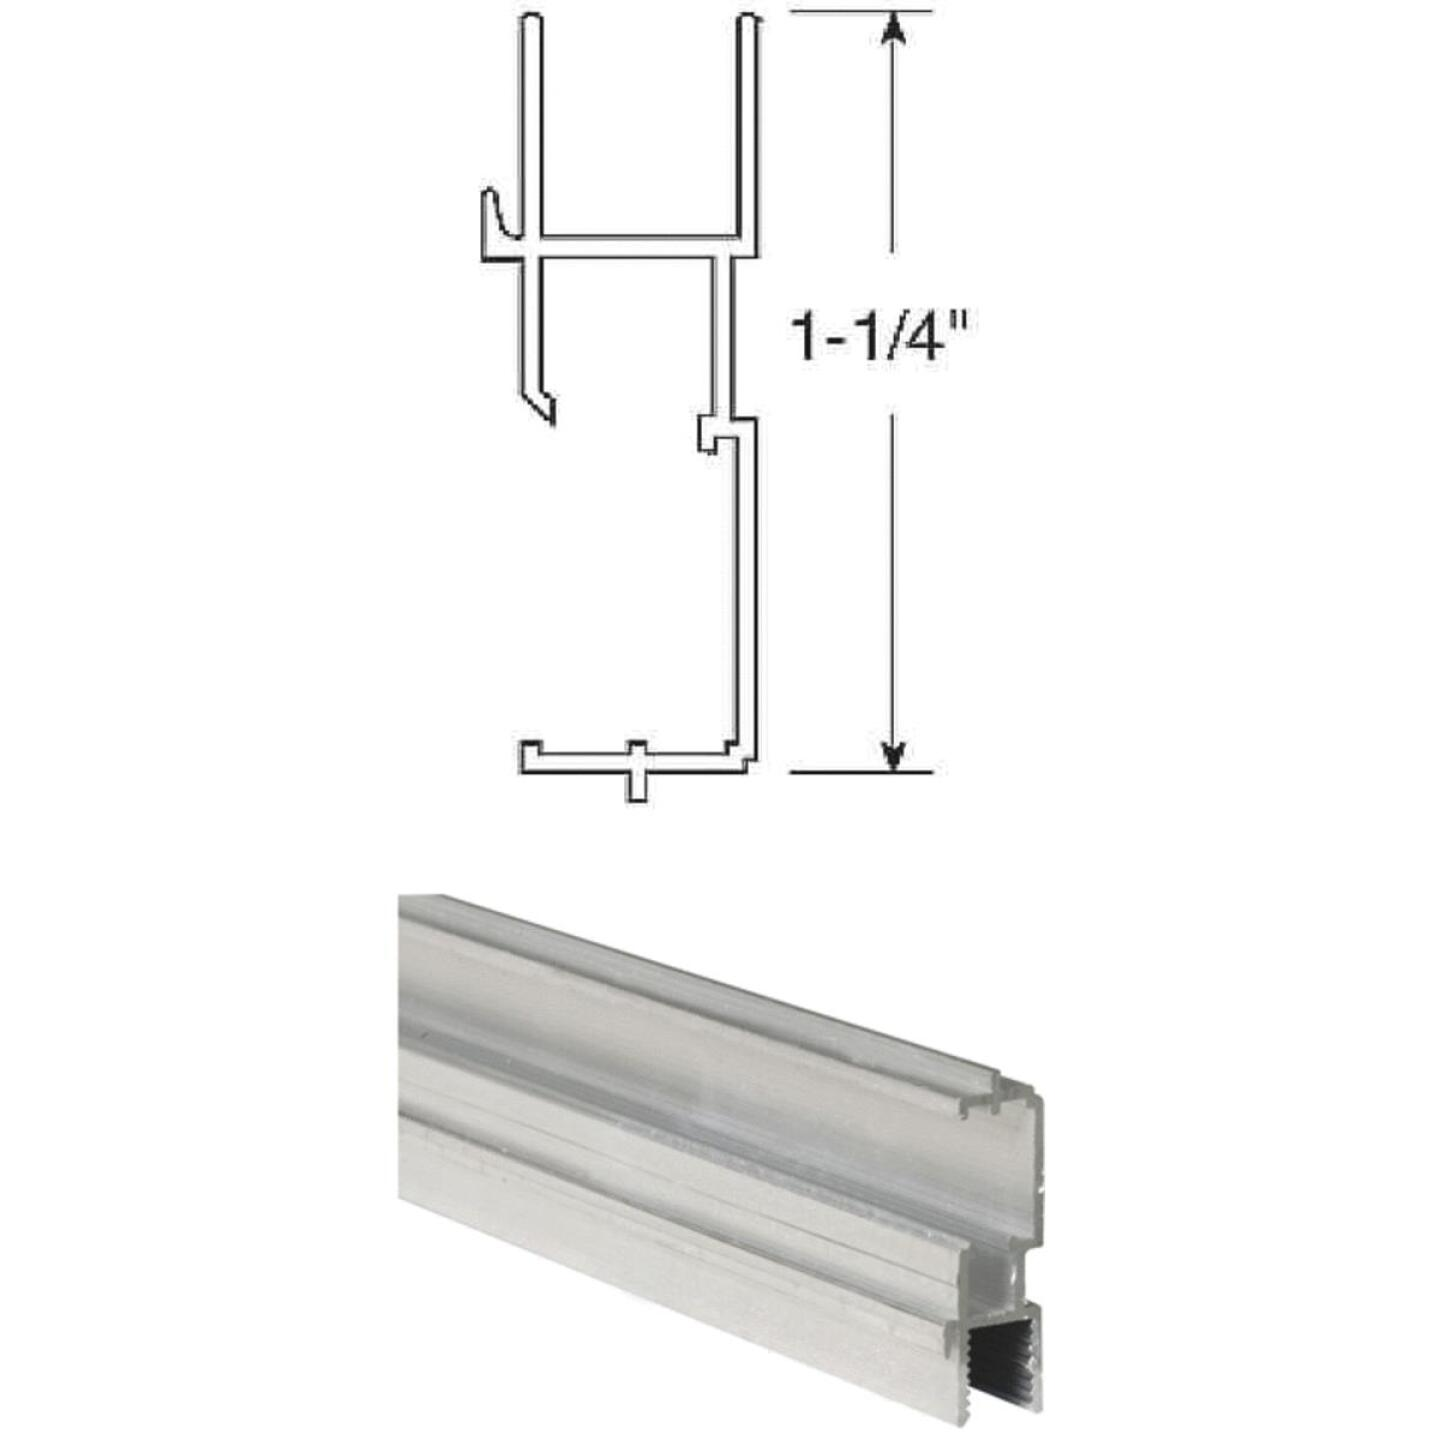 Prime-Line 1-1/4 In. x 72 In. Mill Triple Track Bottom Window Frame Image 1